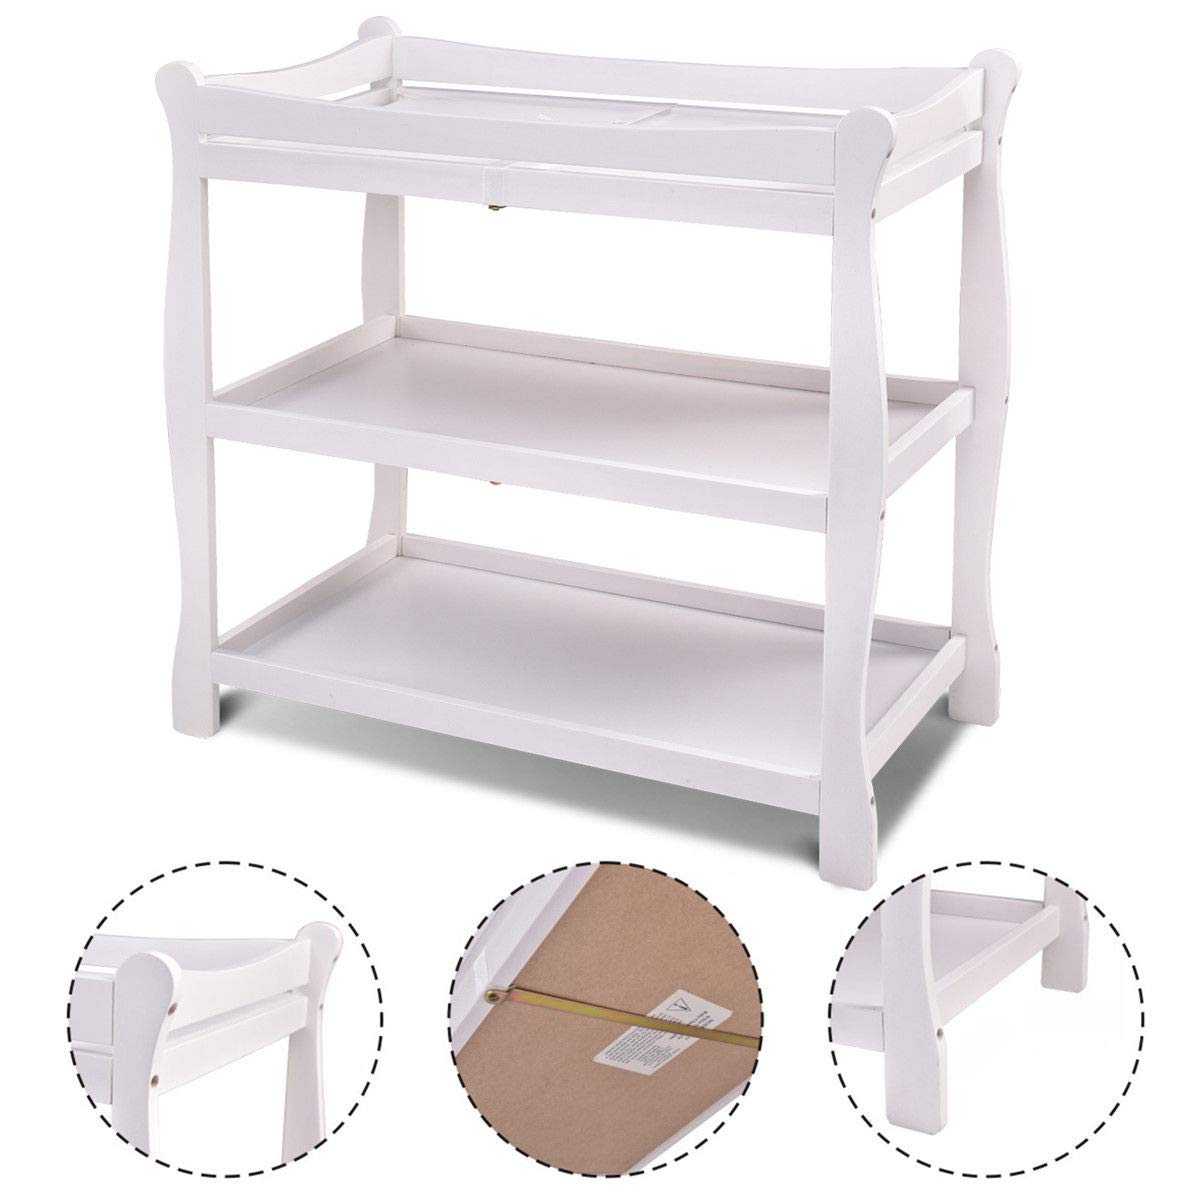 GHP 35.5''x18''x37'' White Wood 2-Level Shelve Sleigh Style Baby Diaper Changing Table